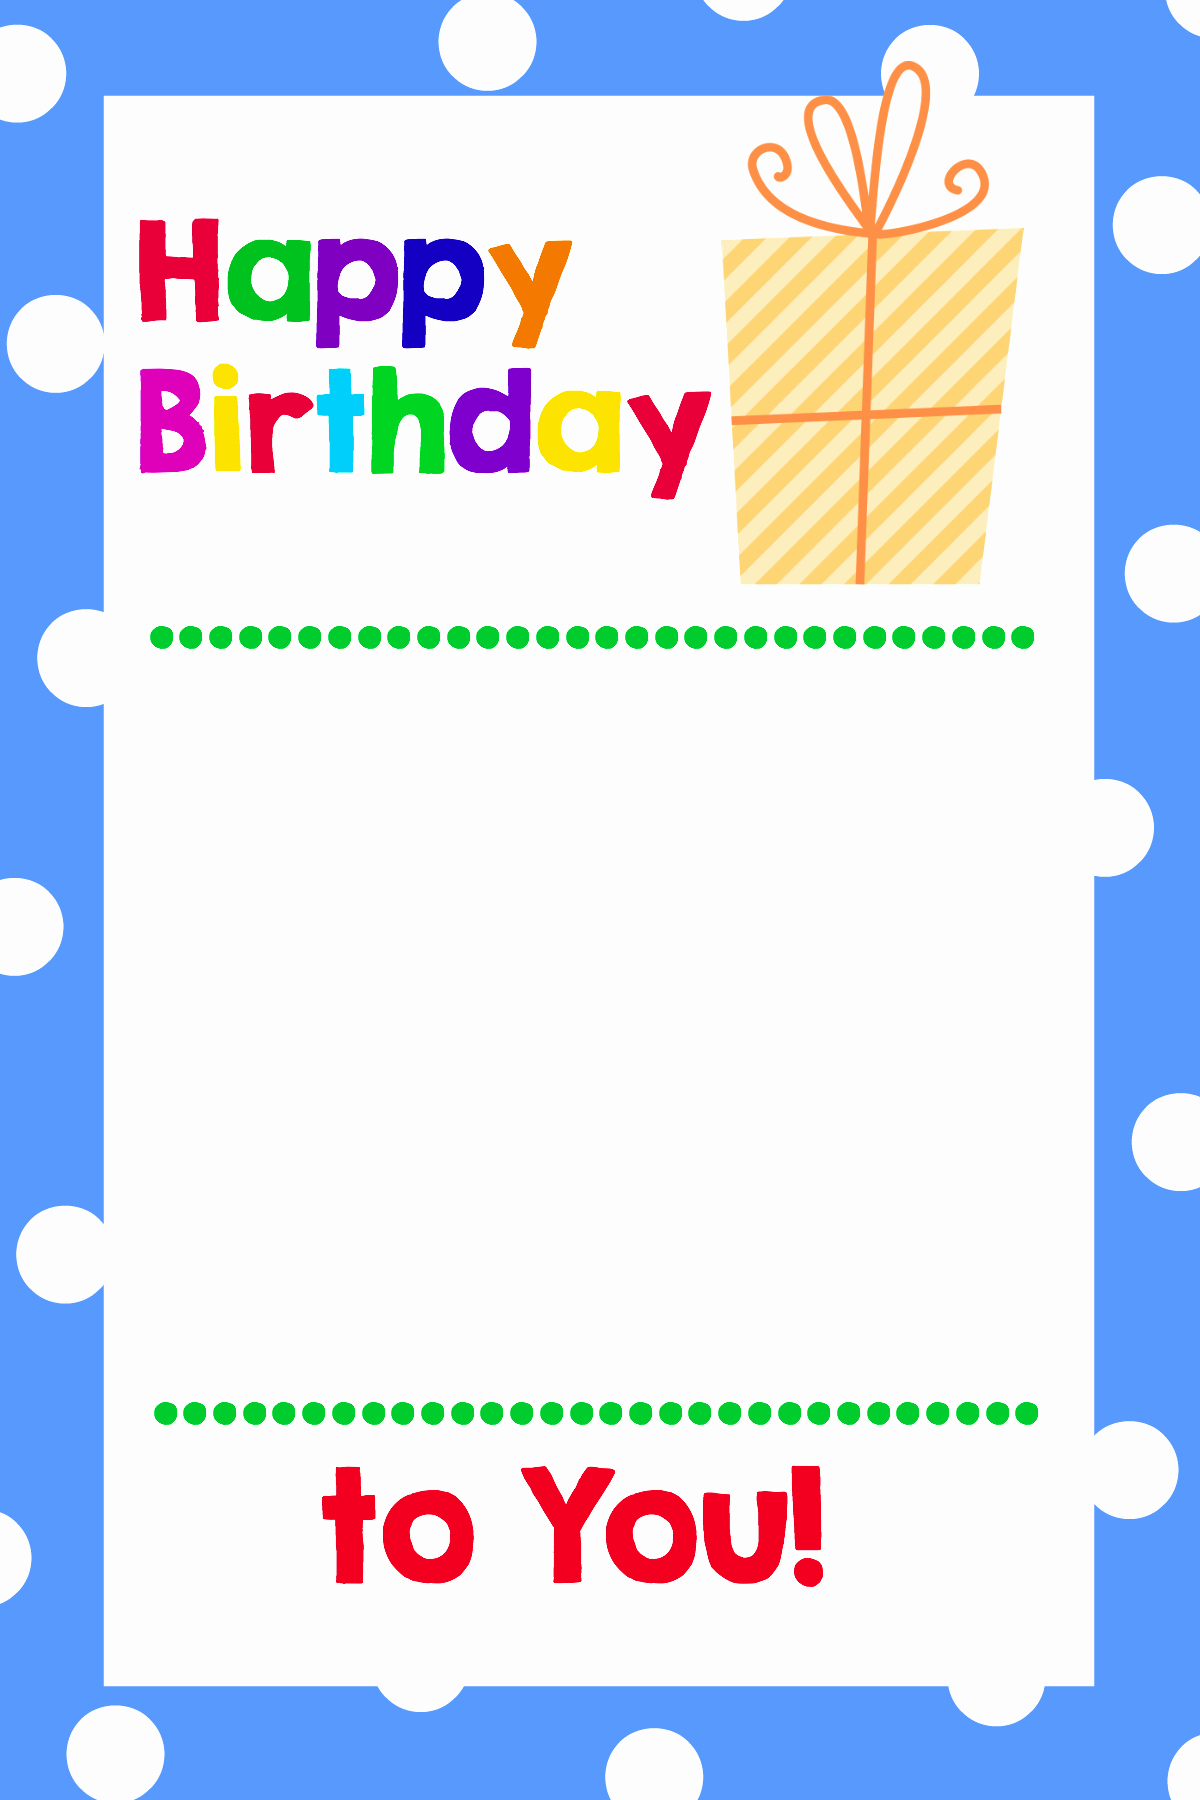 Happy Birthday Certificate Free Printable Lovely Printable Birthday Gift Card Holders Crazy Little Projects